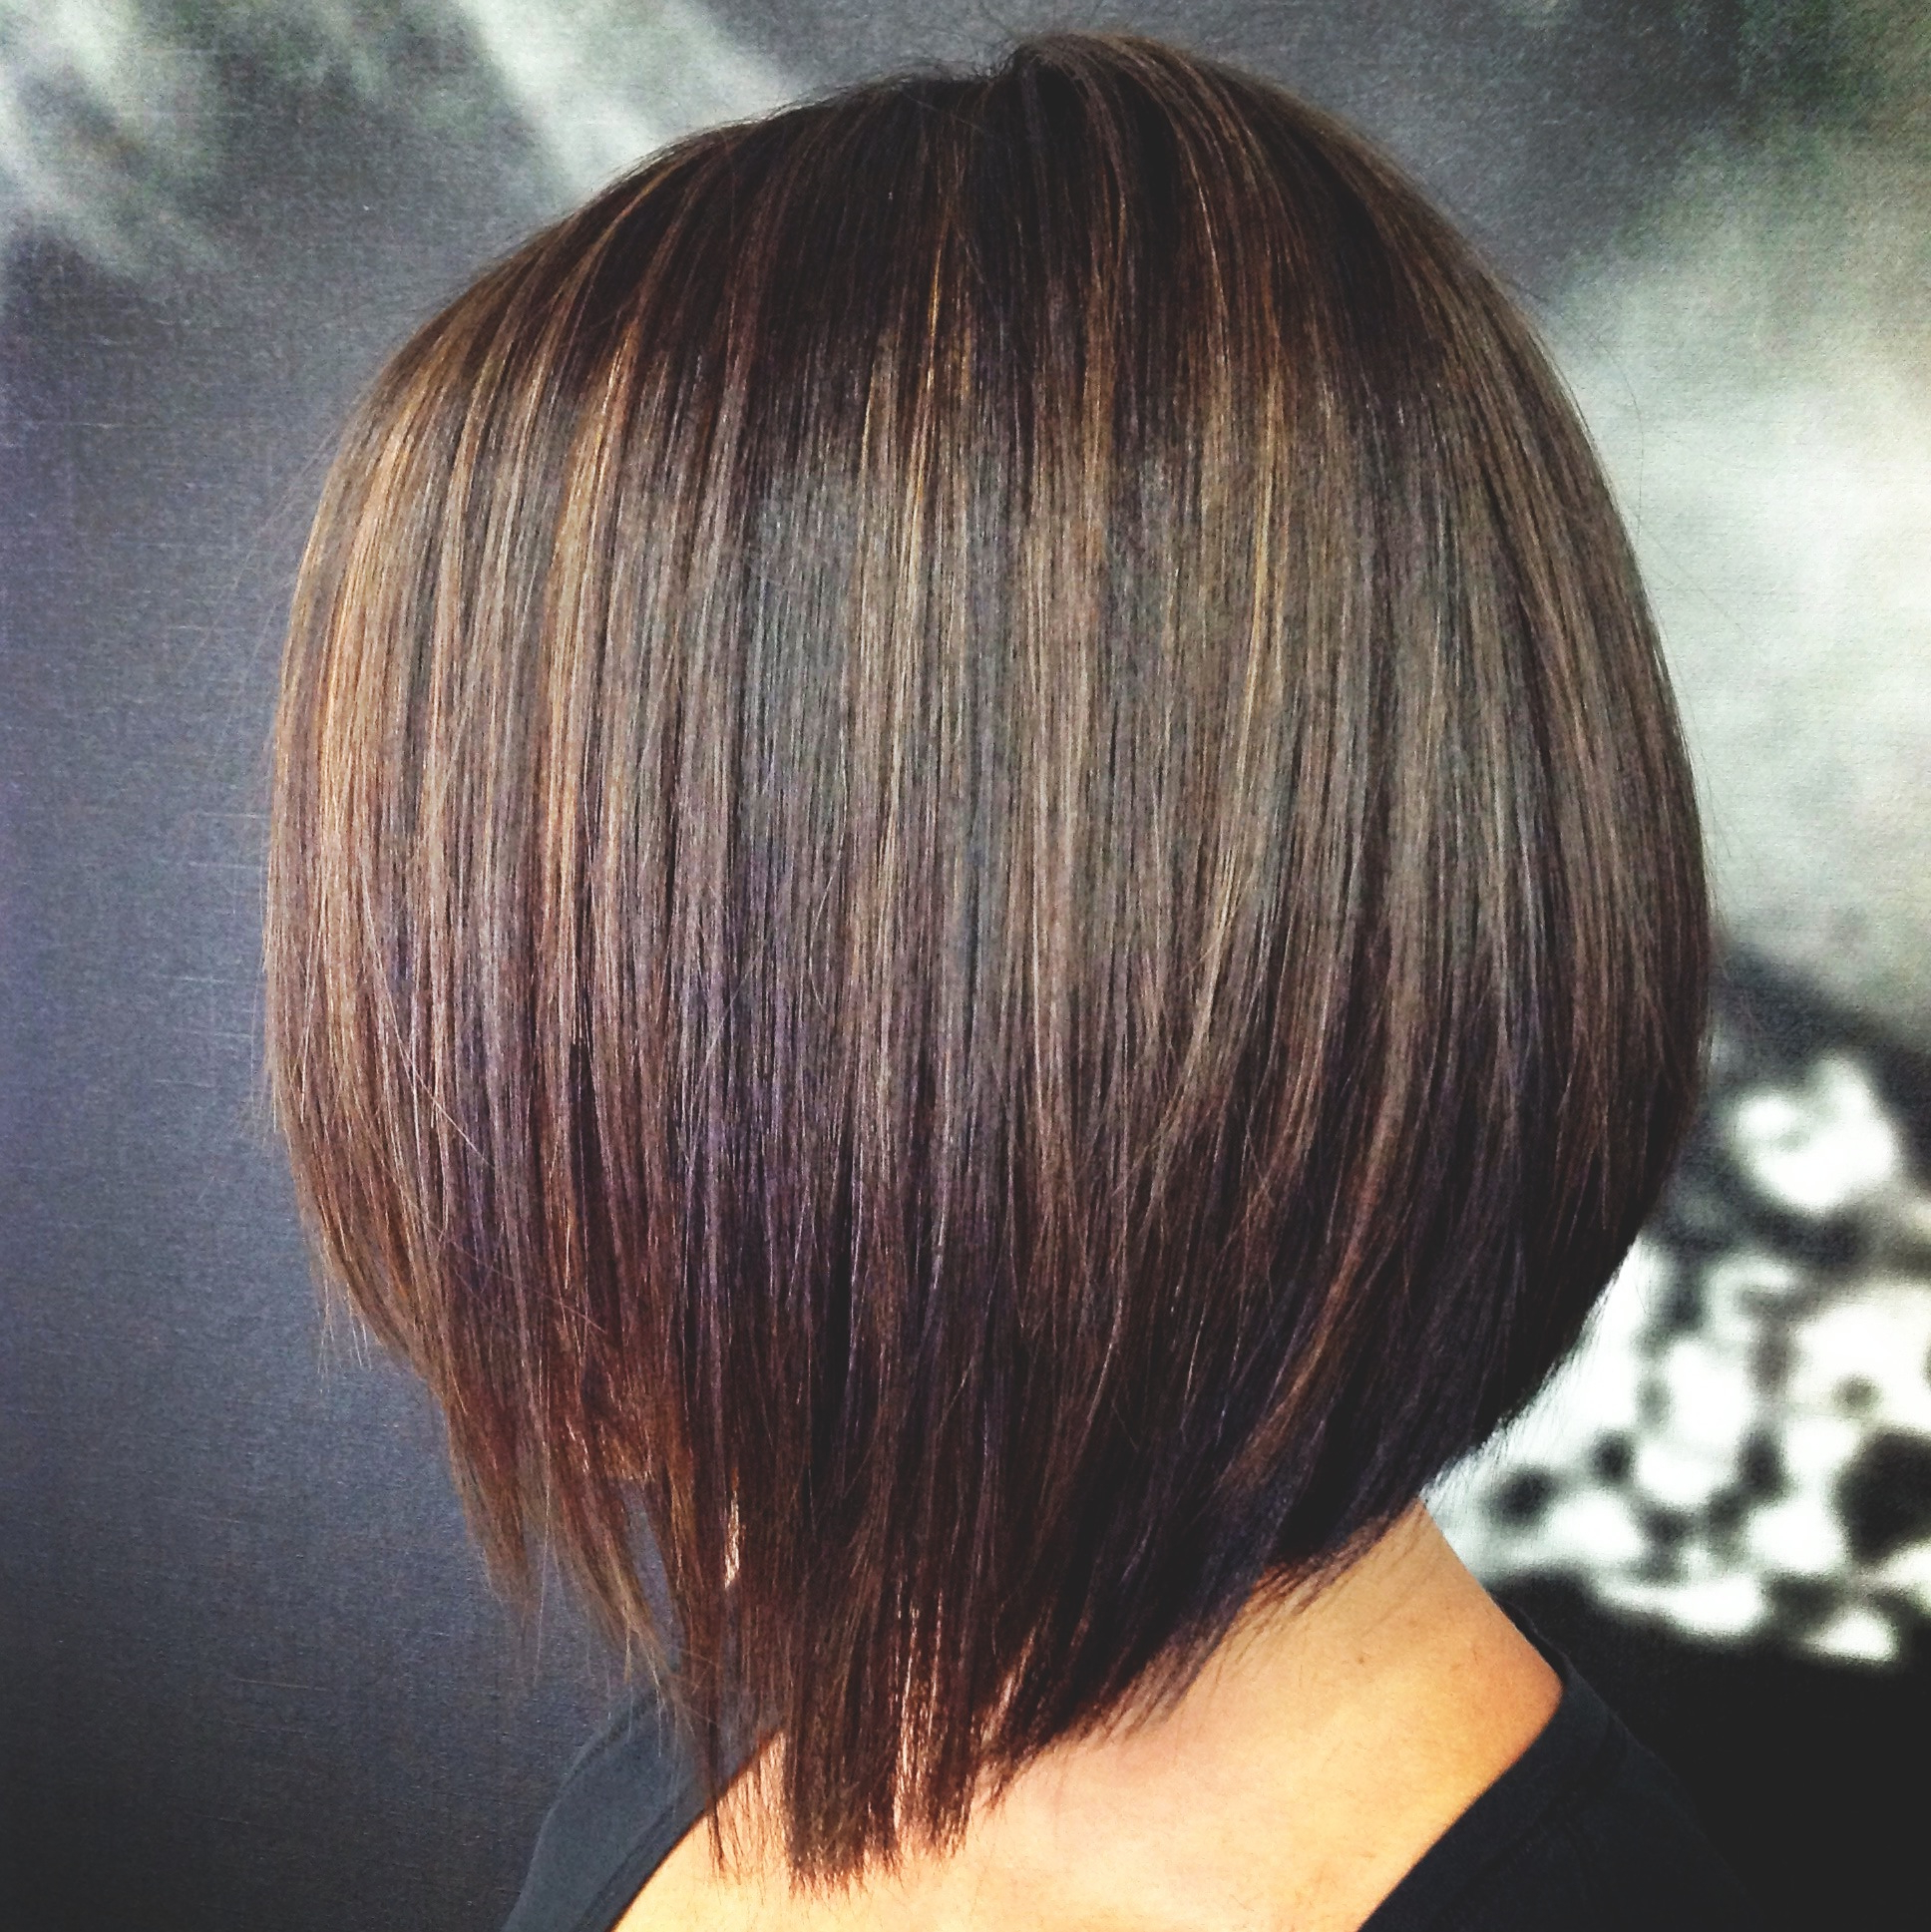 Remarkable Caramel Bob Hairstyles With 20 Short Hairstyles For Girls Pertaining To Soft Brown And Caramel Wavy Bob Hairstyles (View 13 of 25)